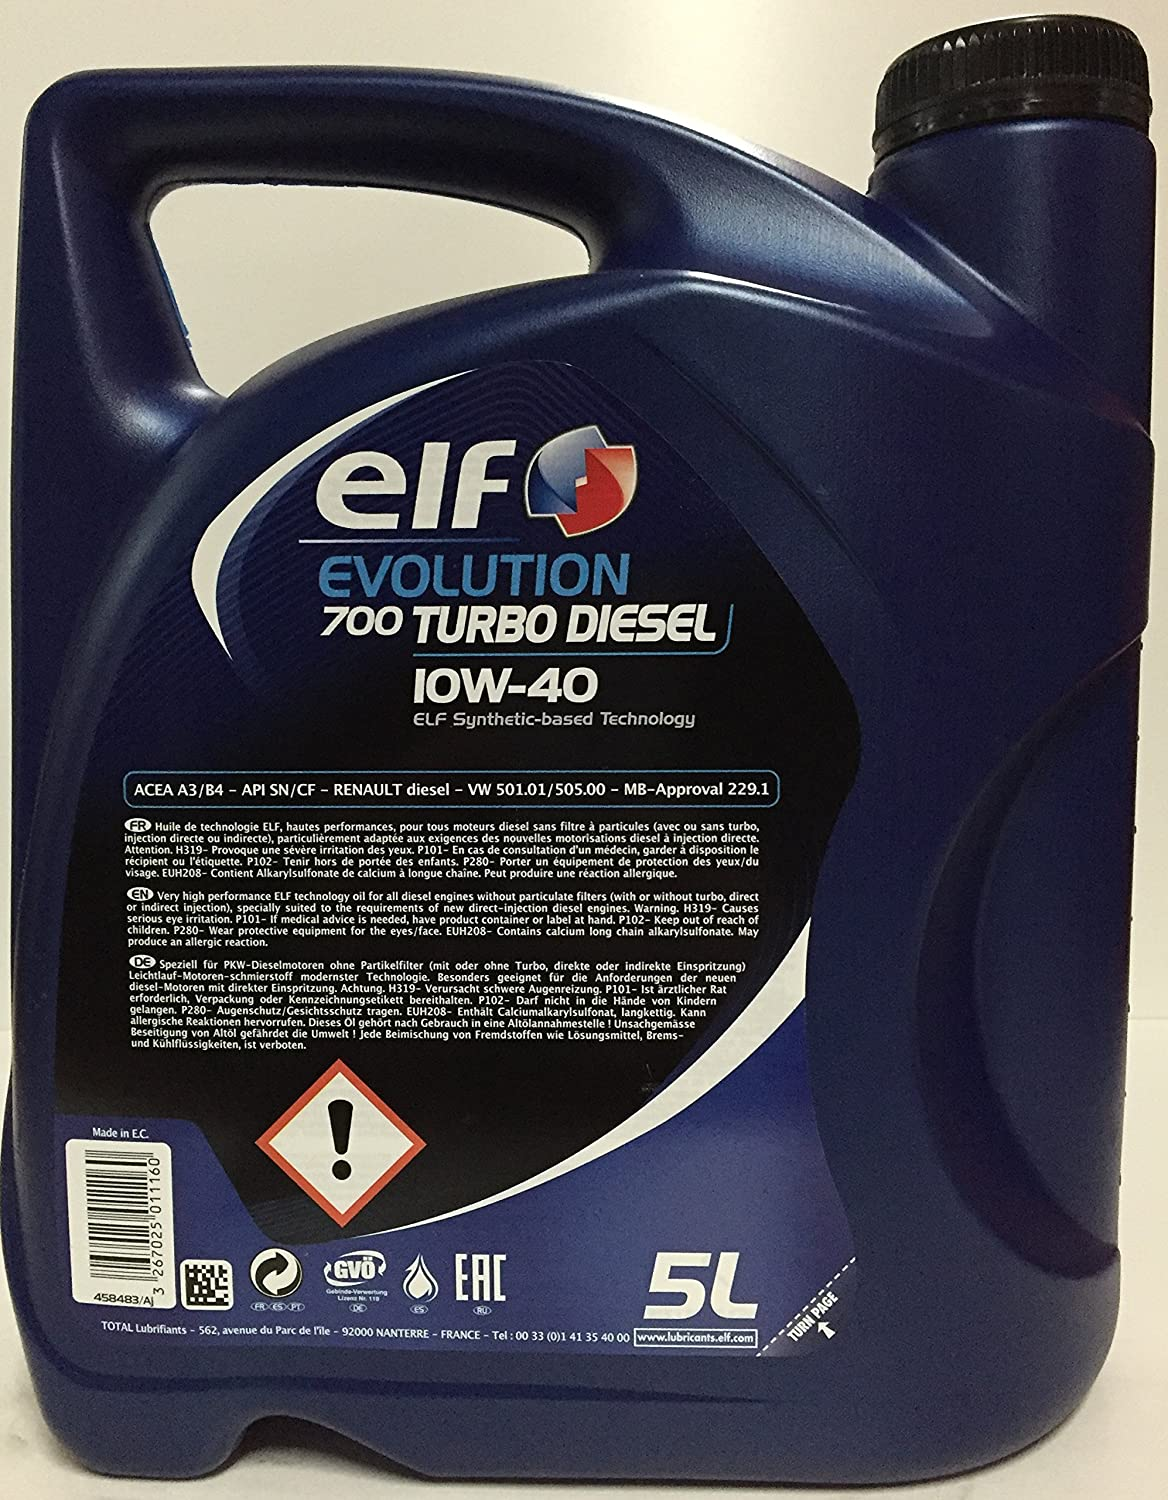 Aceite de Motor El Evolution 700 Turbo Diesel 10W40 – Botella de 1 L